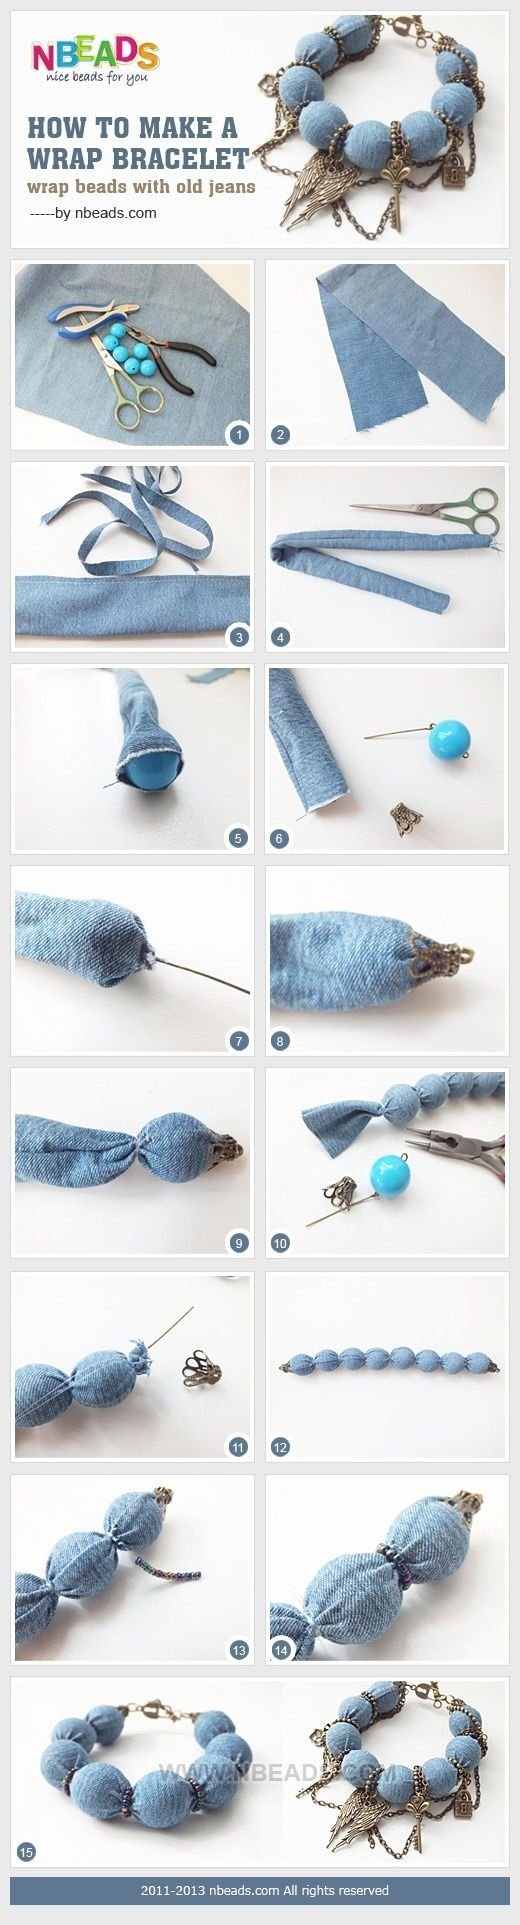 How to Make A Wrap Bracelet - Wrap Beads with Old Jeans by Amanda Wong | Project | Jewelry / Bracelets | Kollabora: